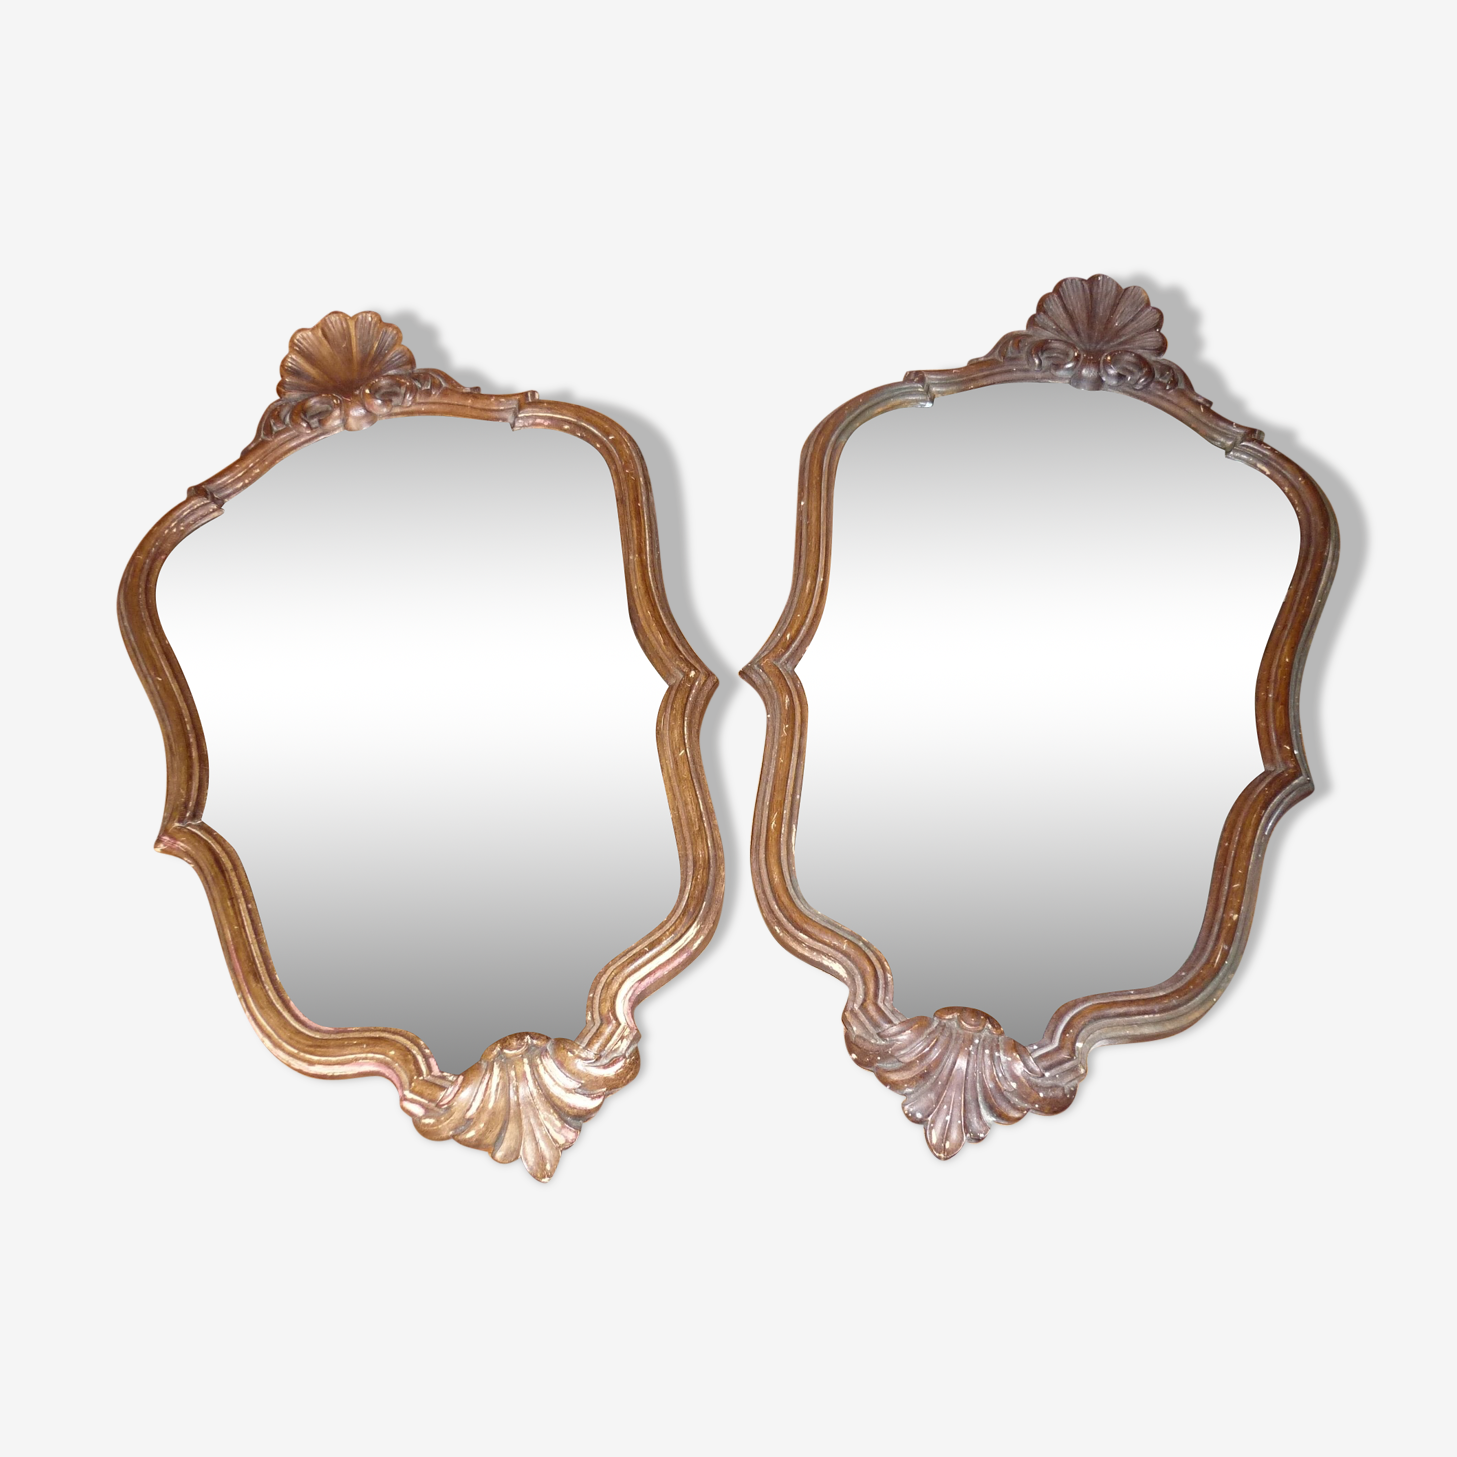 Pair of Louis XV style wooden mirrors 60x34 cm